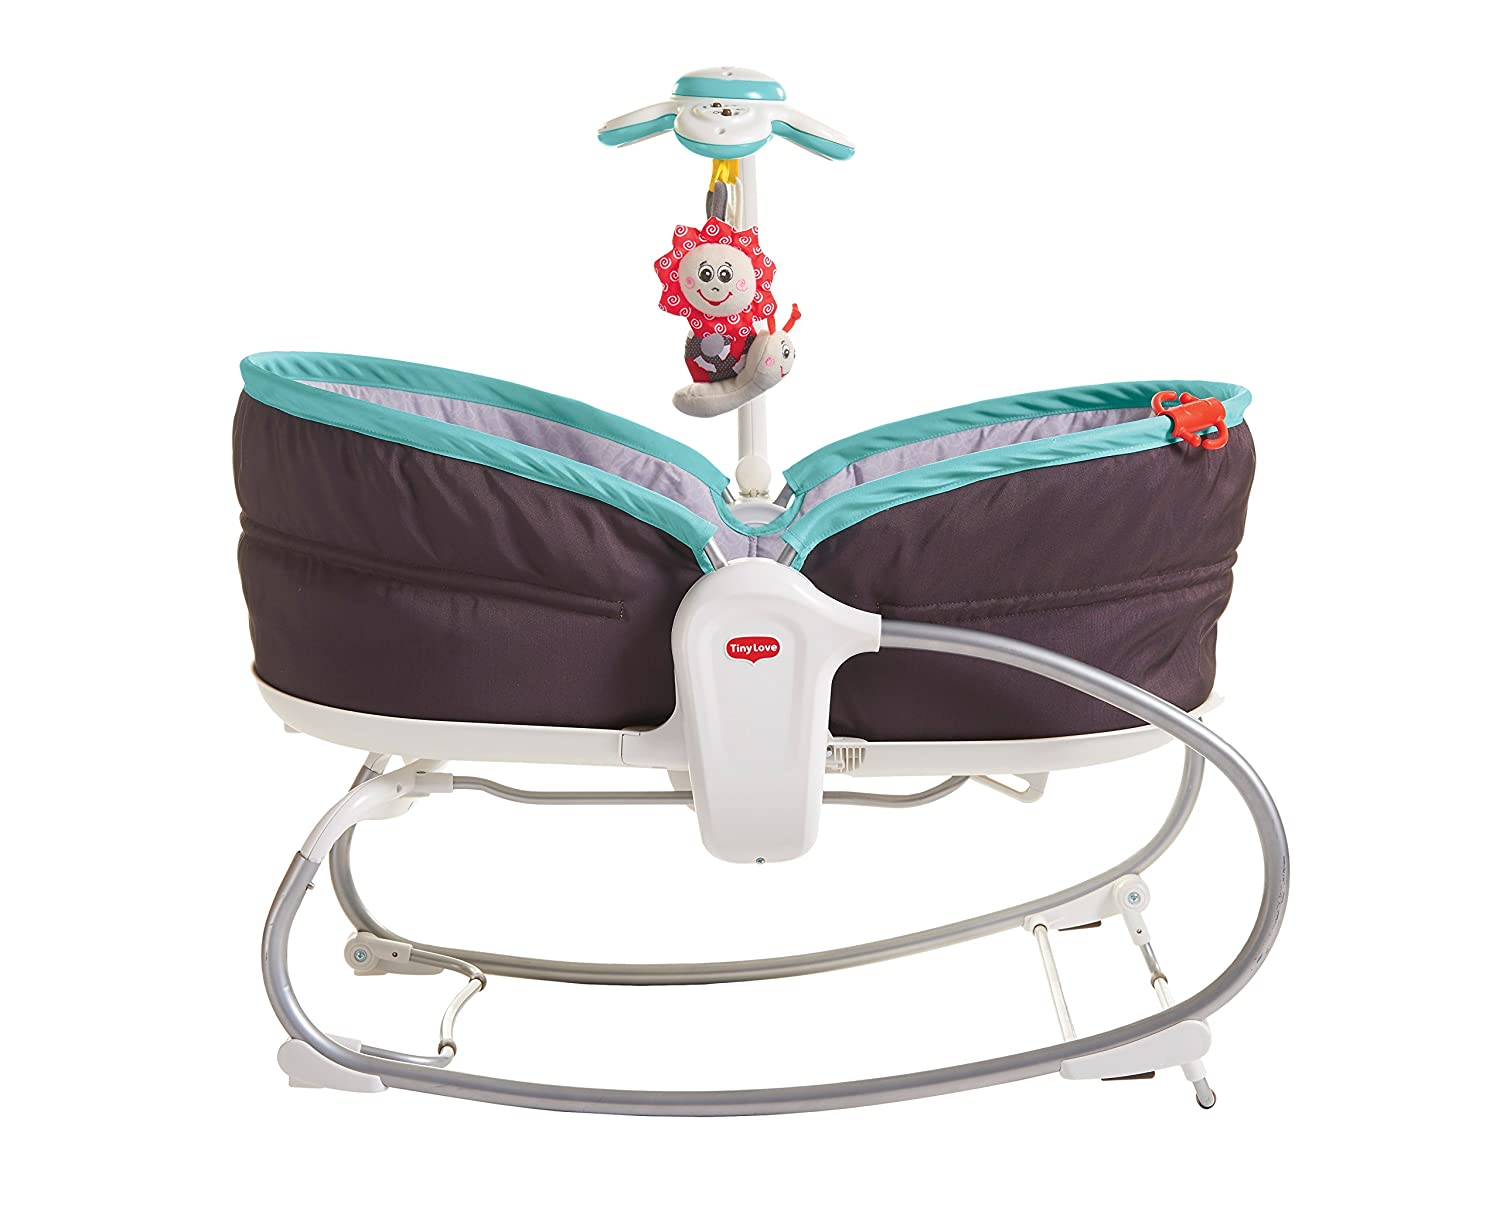 Grey//Turquoise 0 Month + Tiny Love 3-in-1 Rocker Napper Newborn Baby Bouncer with Recline Music and Lights Suitable from Birth